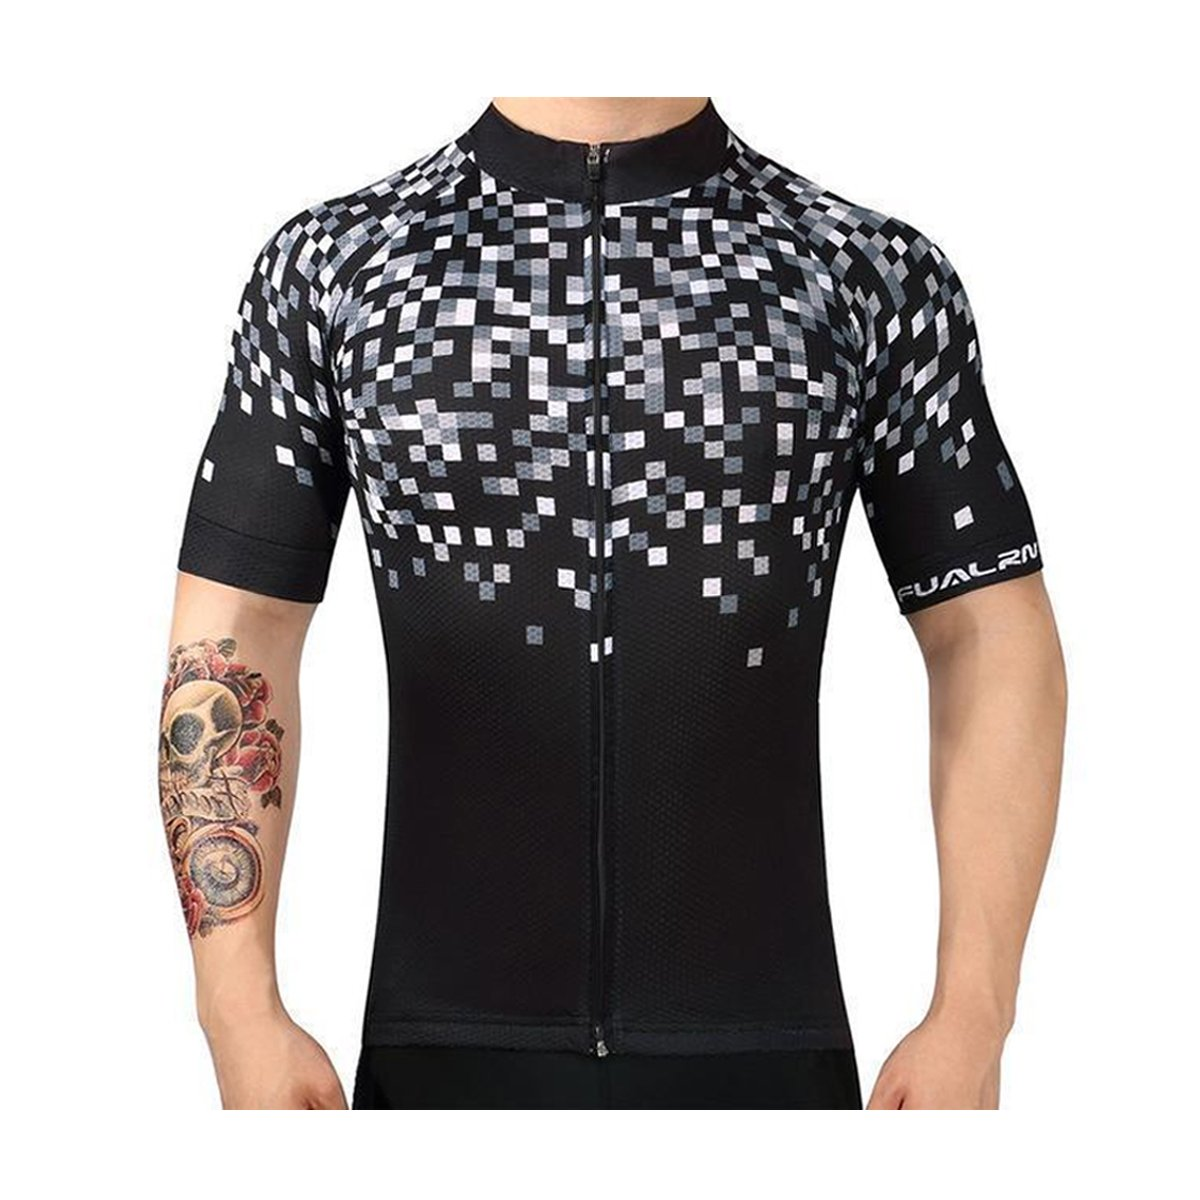 Pixelated Breathable Cycling Jersey Made of Quick-Drying Fabric